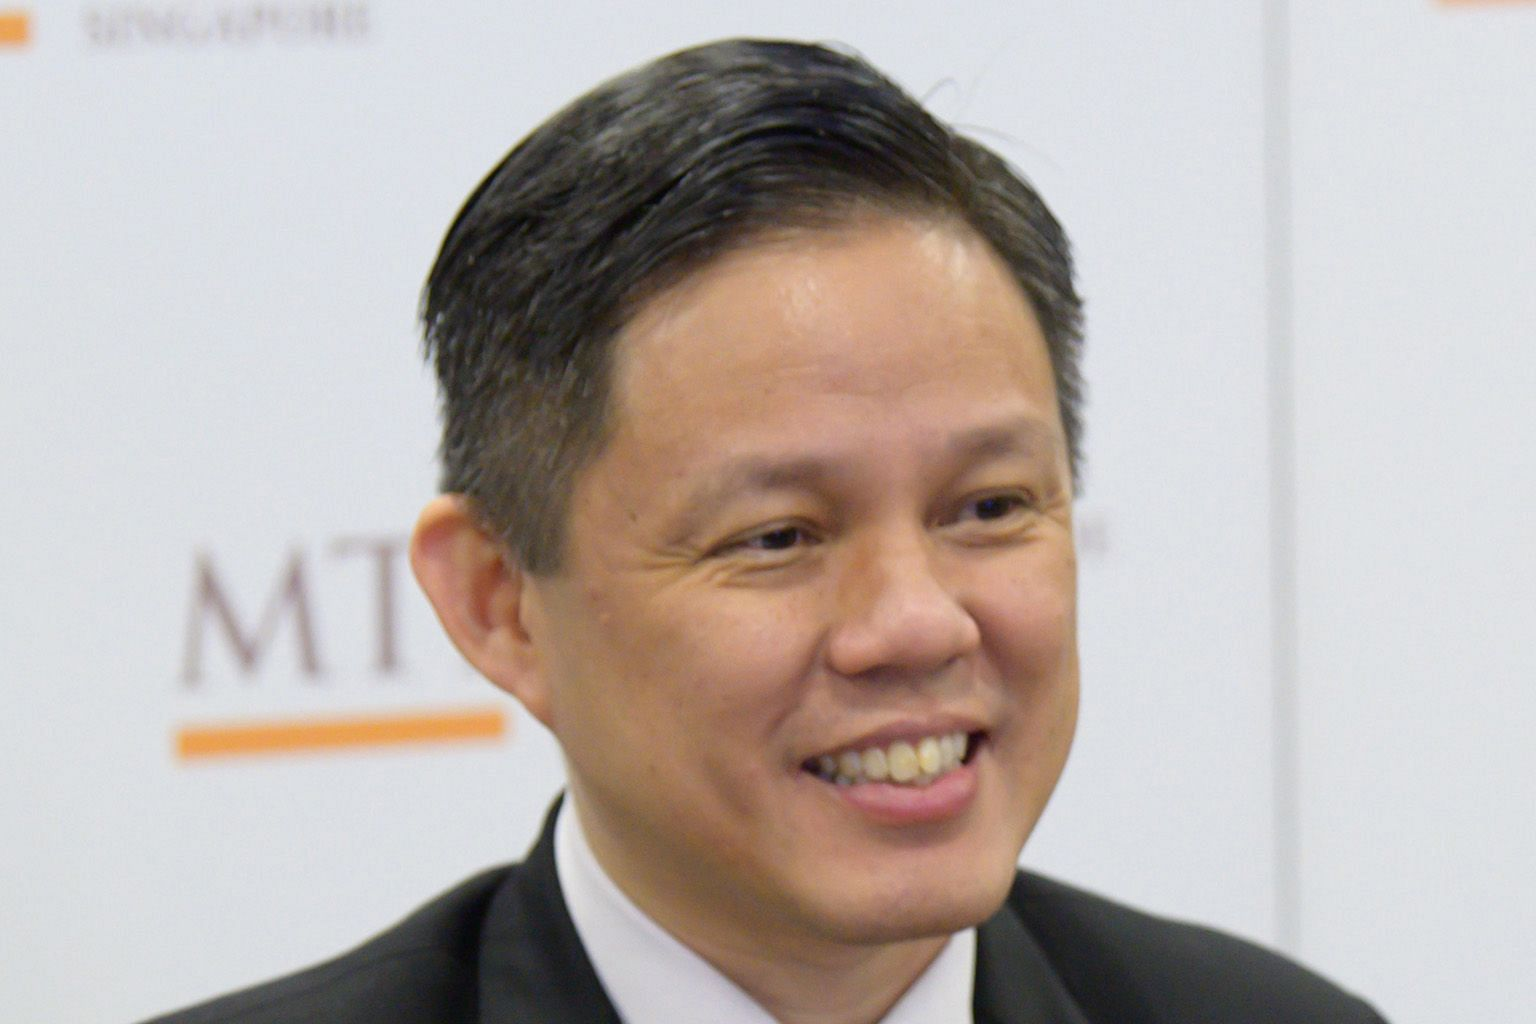 """Speaking during the FutureChina Global Forum yesterday, Trade and Industry Minister Chan Chun Sing said that from his observations, he is optimistic that China's connection with the world """"can only deepen and strengthen""""."""